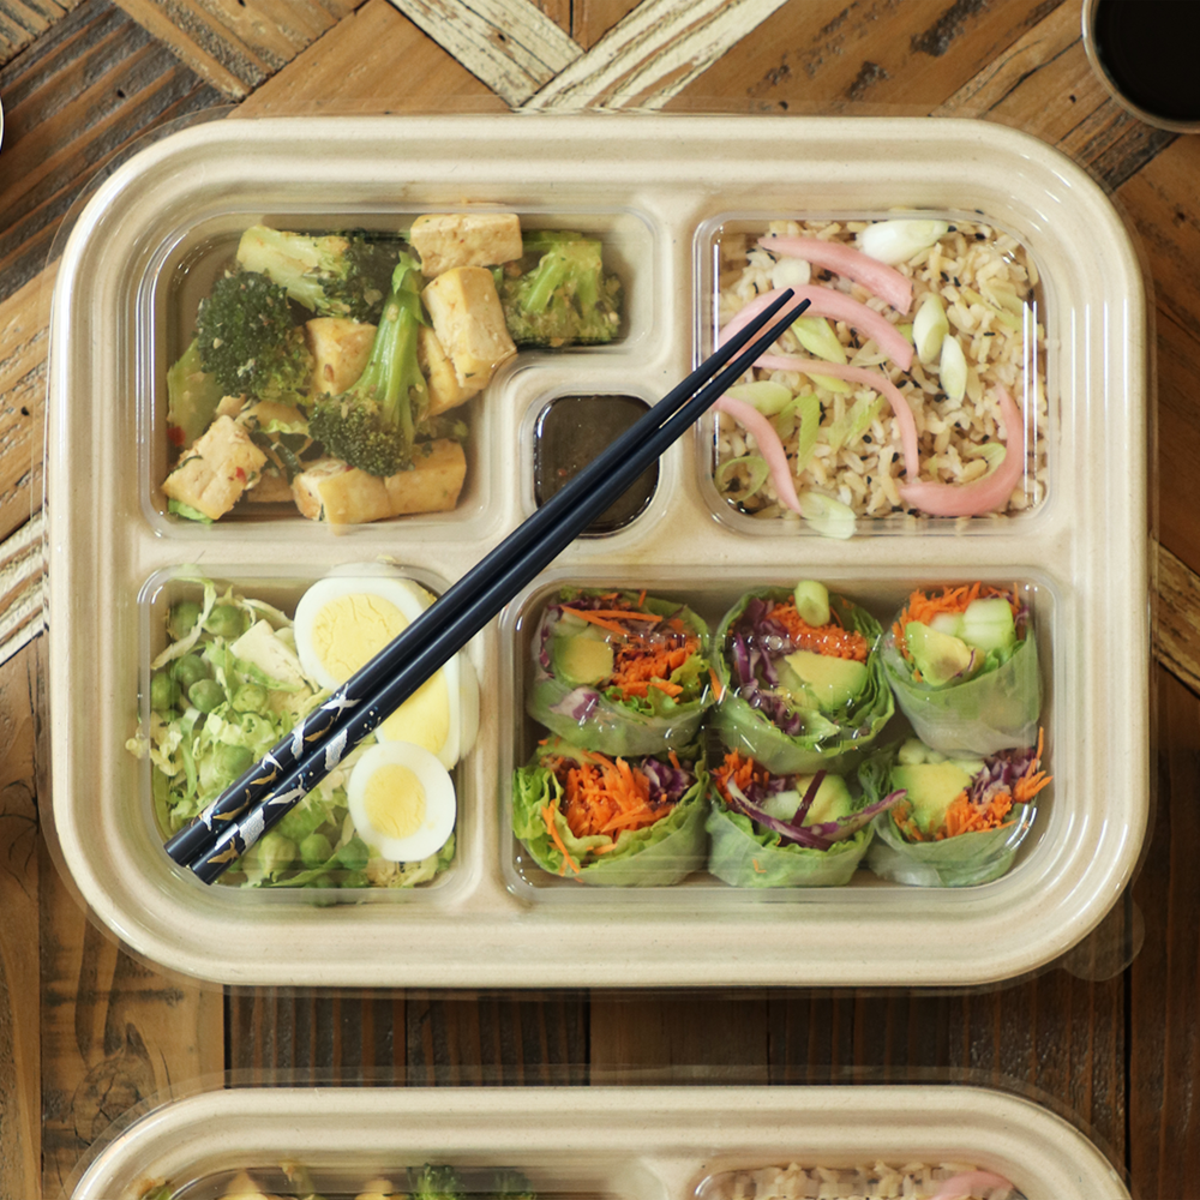 fiber five compartments compostable bento box containing sushi and vegetables.